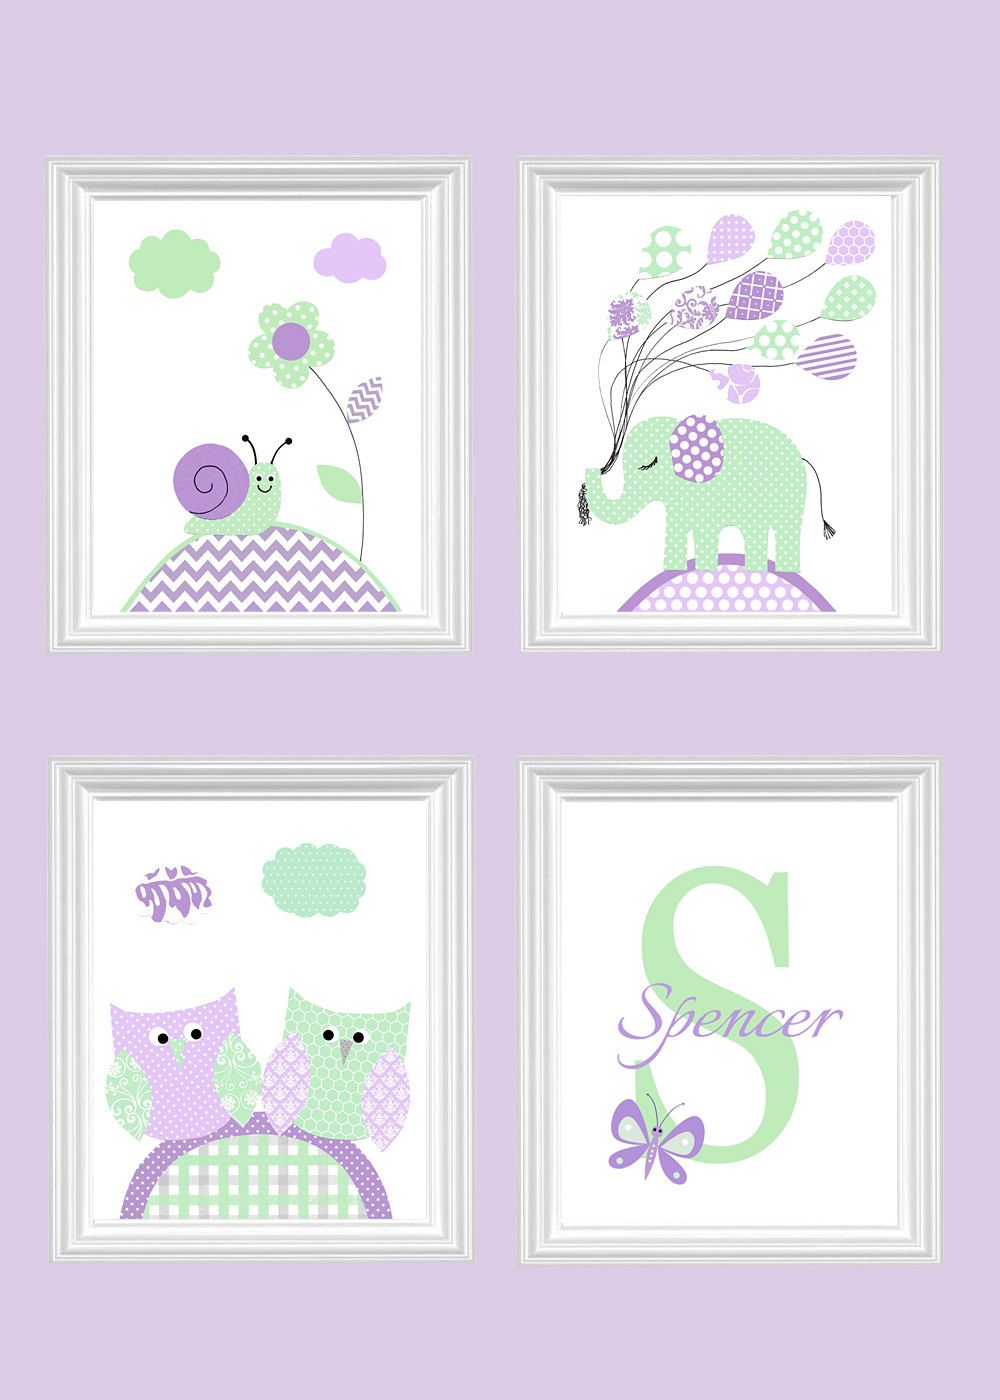 Elephant nursery wall art print mom baby dad by rizzleandrugee - Baby Girl Nursery Art Mint And Purple Nursery Decor Elephant Snail Owls